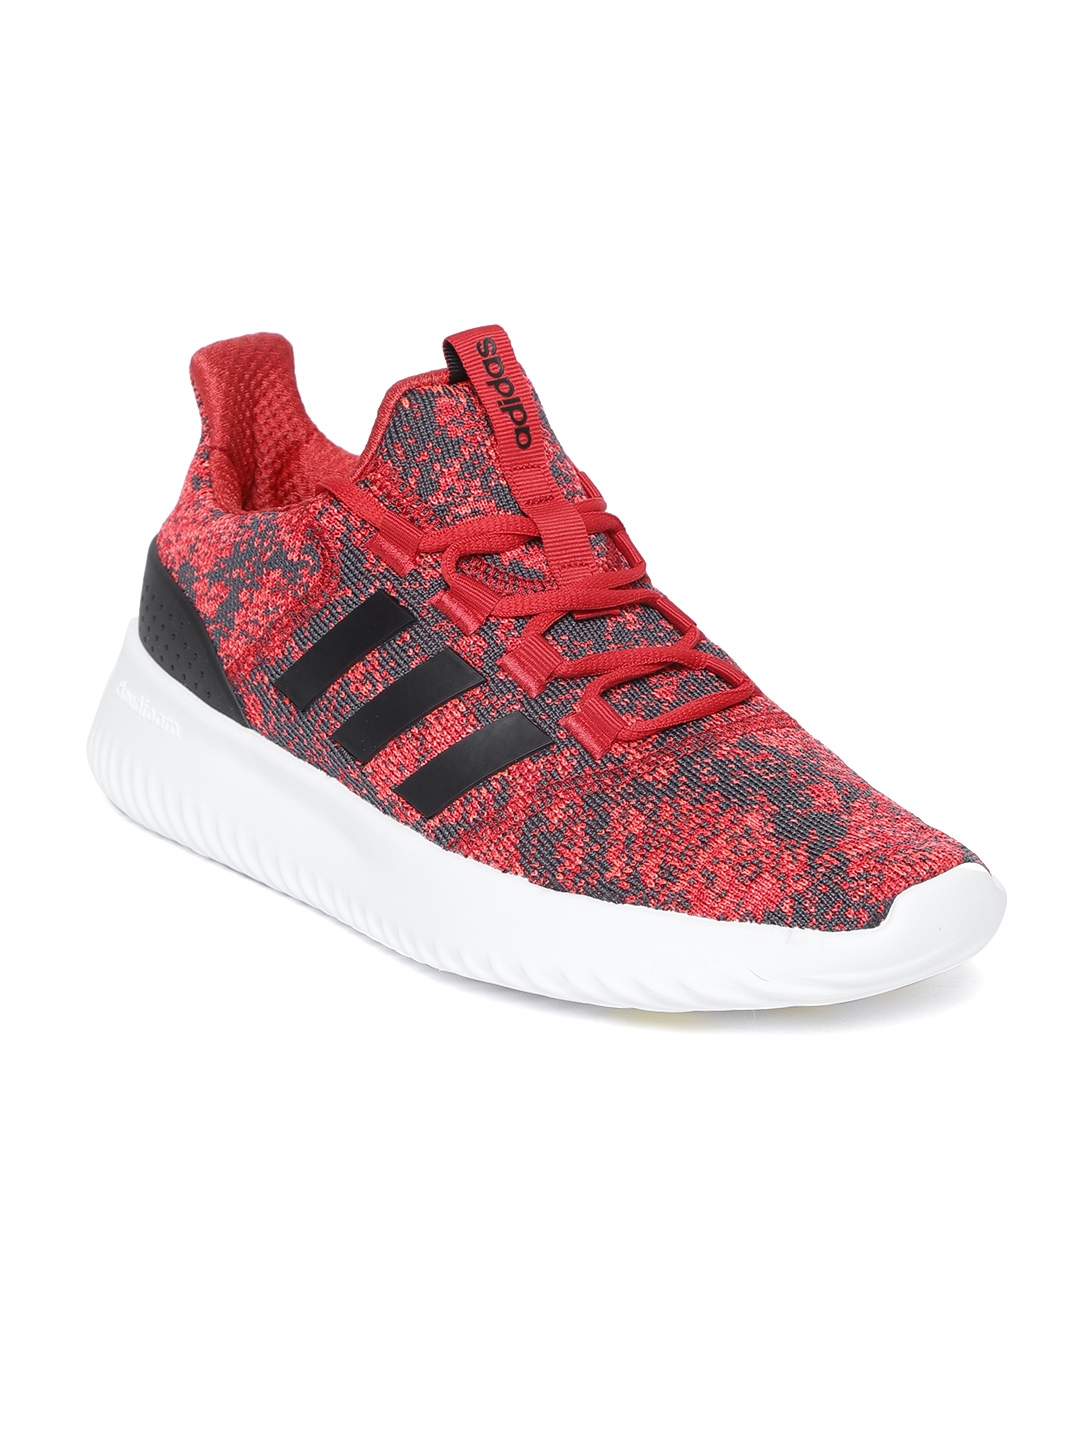 size 40 44a67 88727 ADIDAS Men Red   Charcoal Grey Cloudfoam Ultimate Patterned Running Shoes